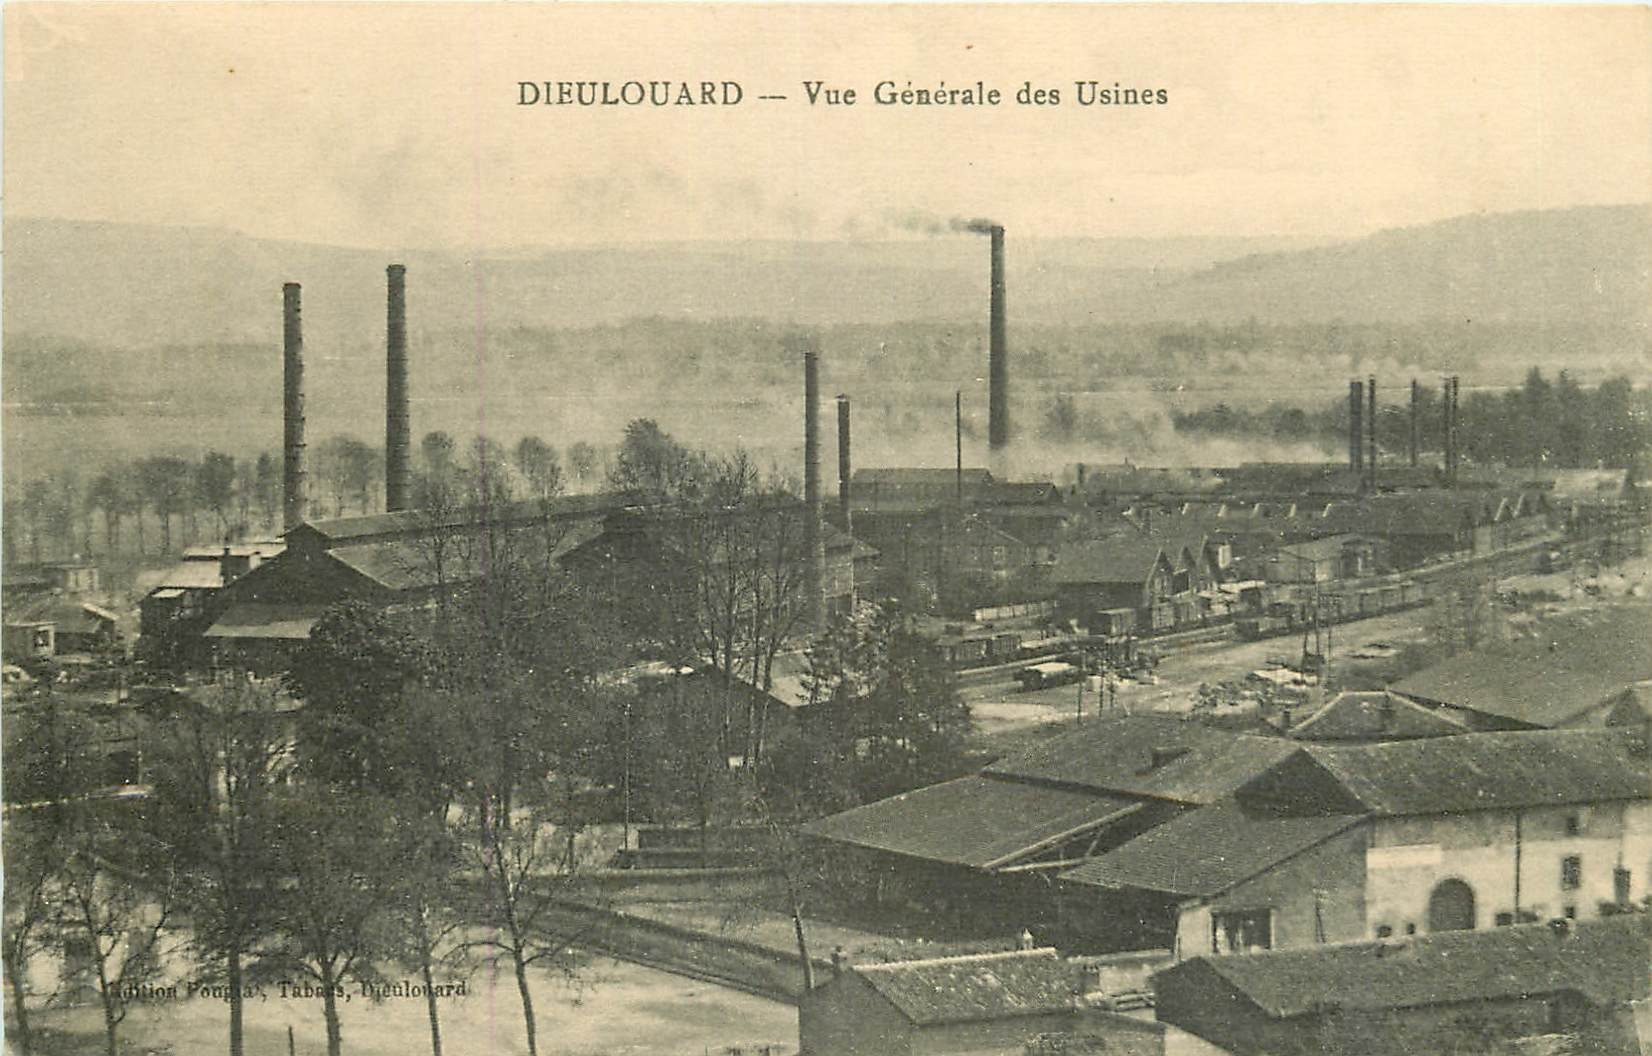 WW 54 DIEULOUARD. Les Usines